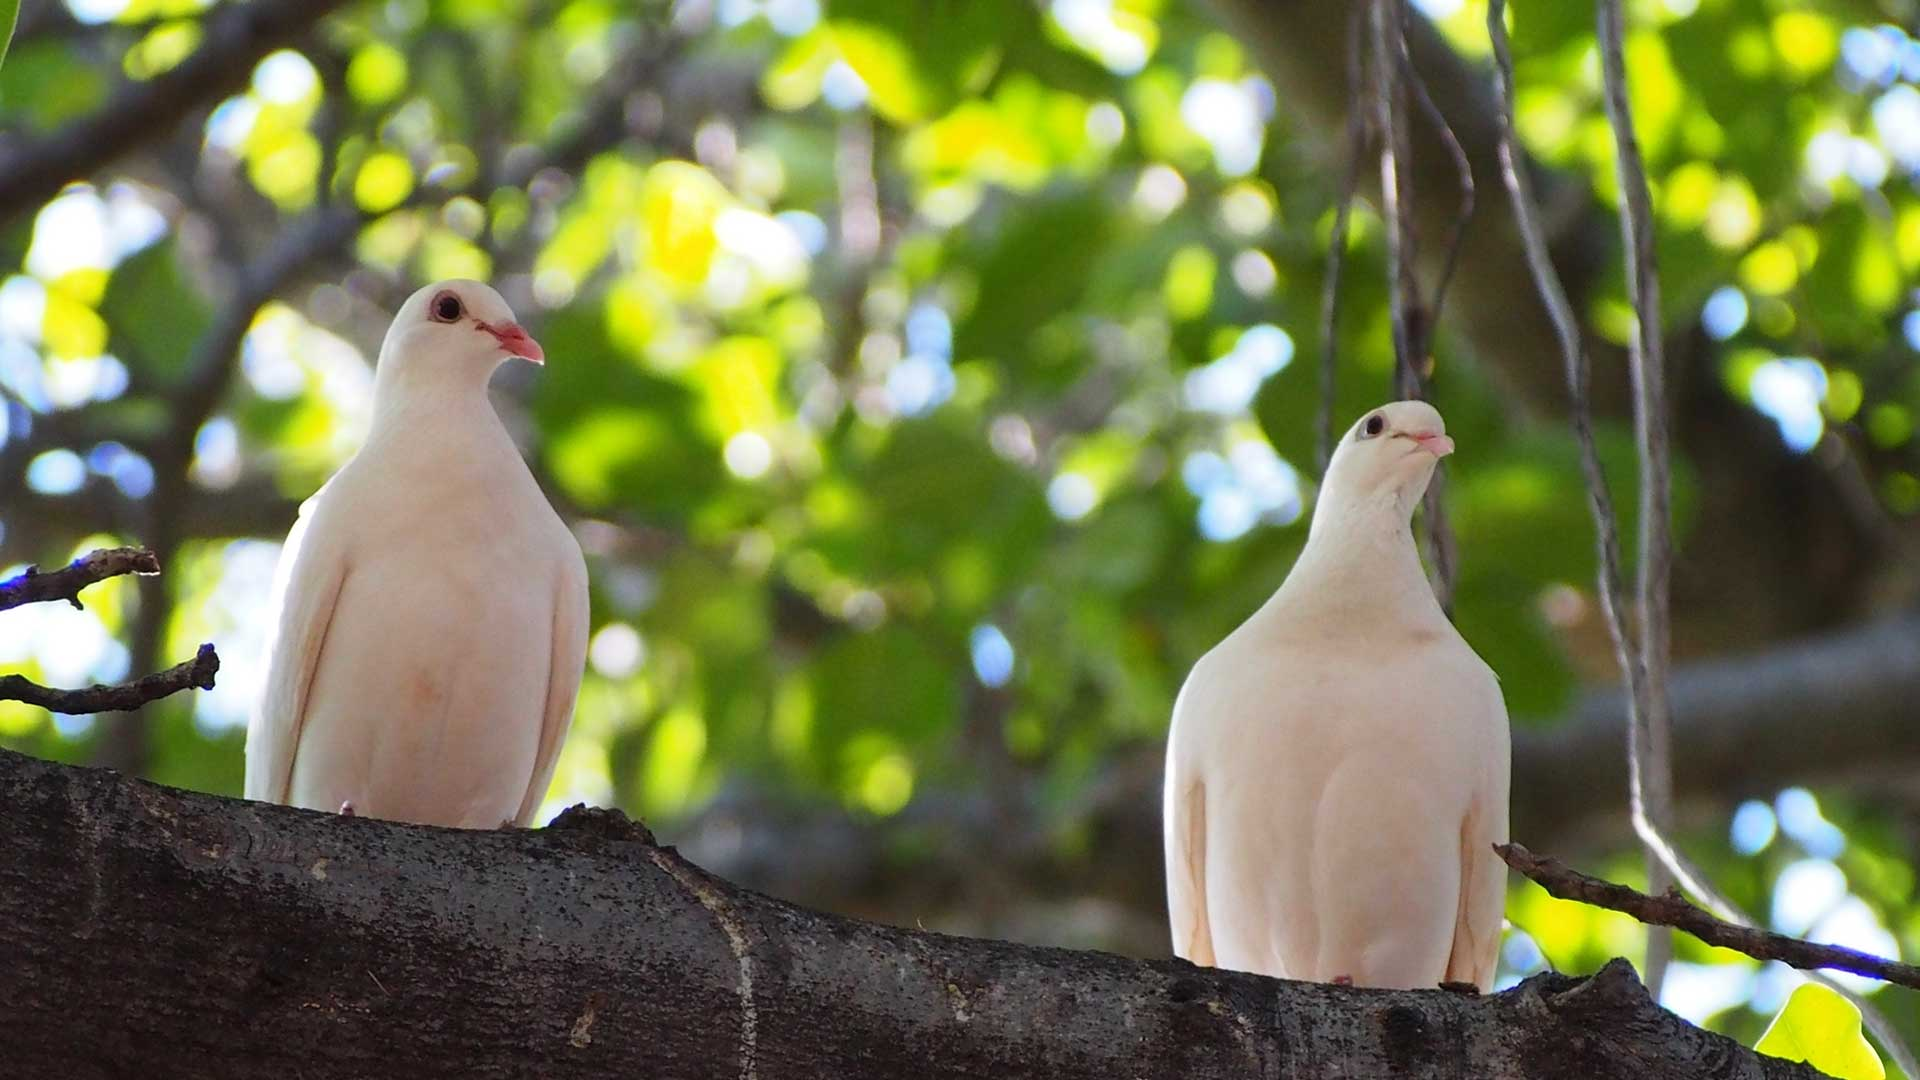 Two white doves sitting in a tree.